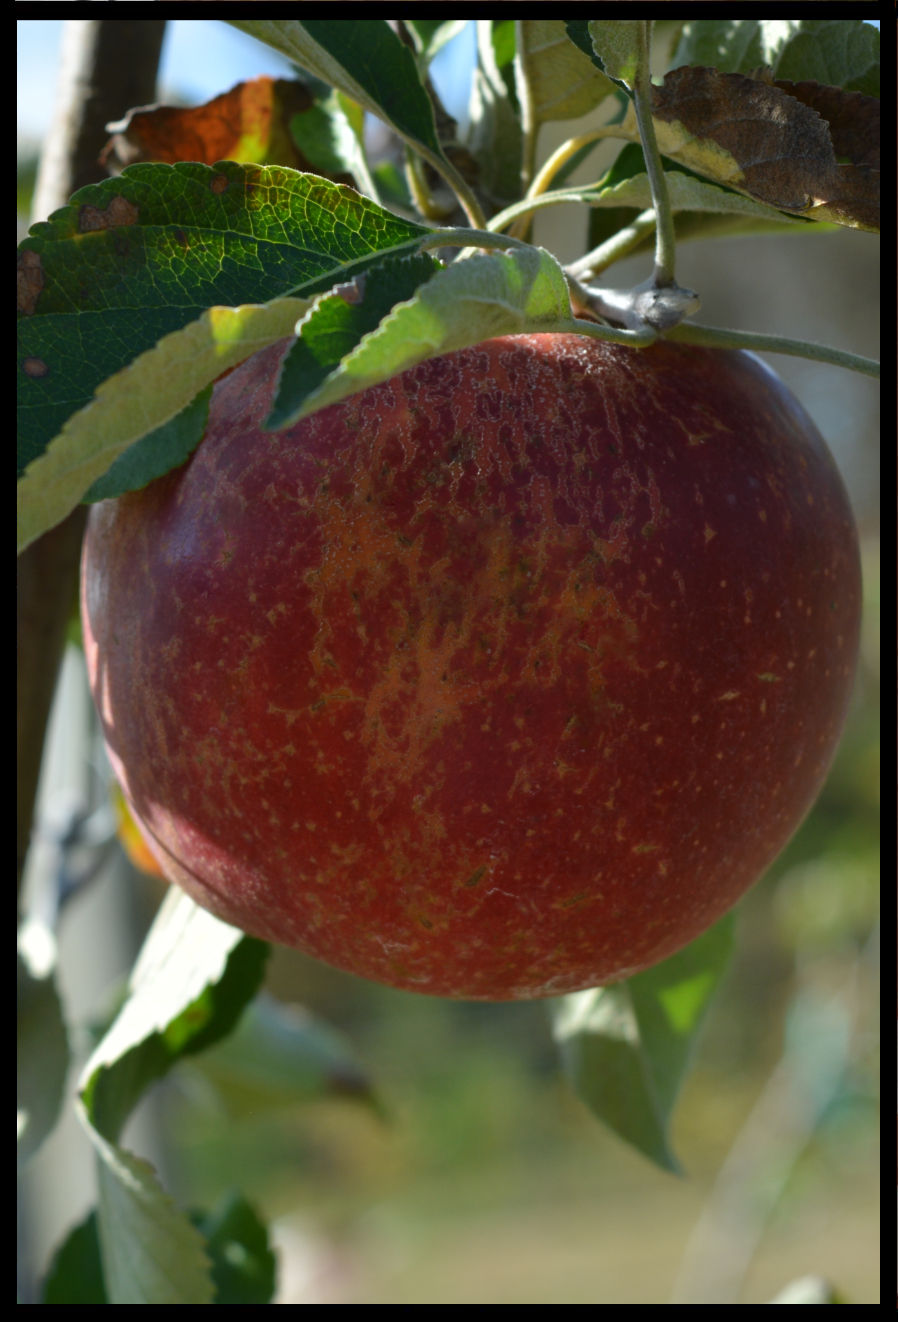 red apple with patches of rough tan skin and small tan dots